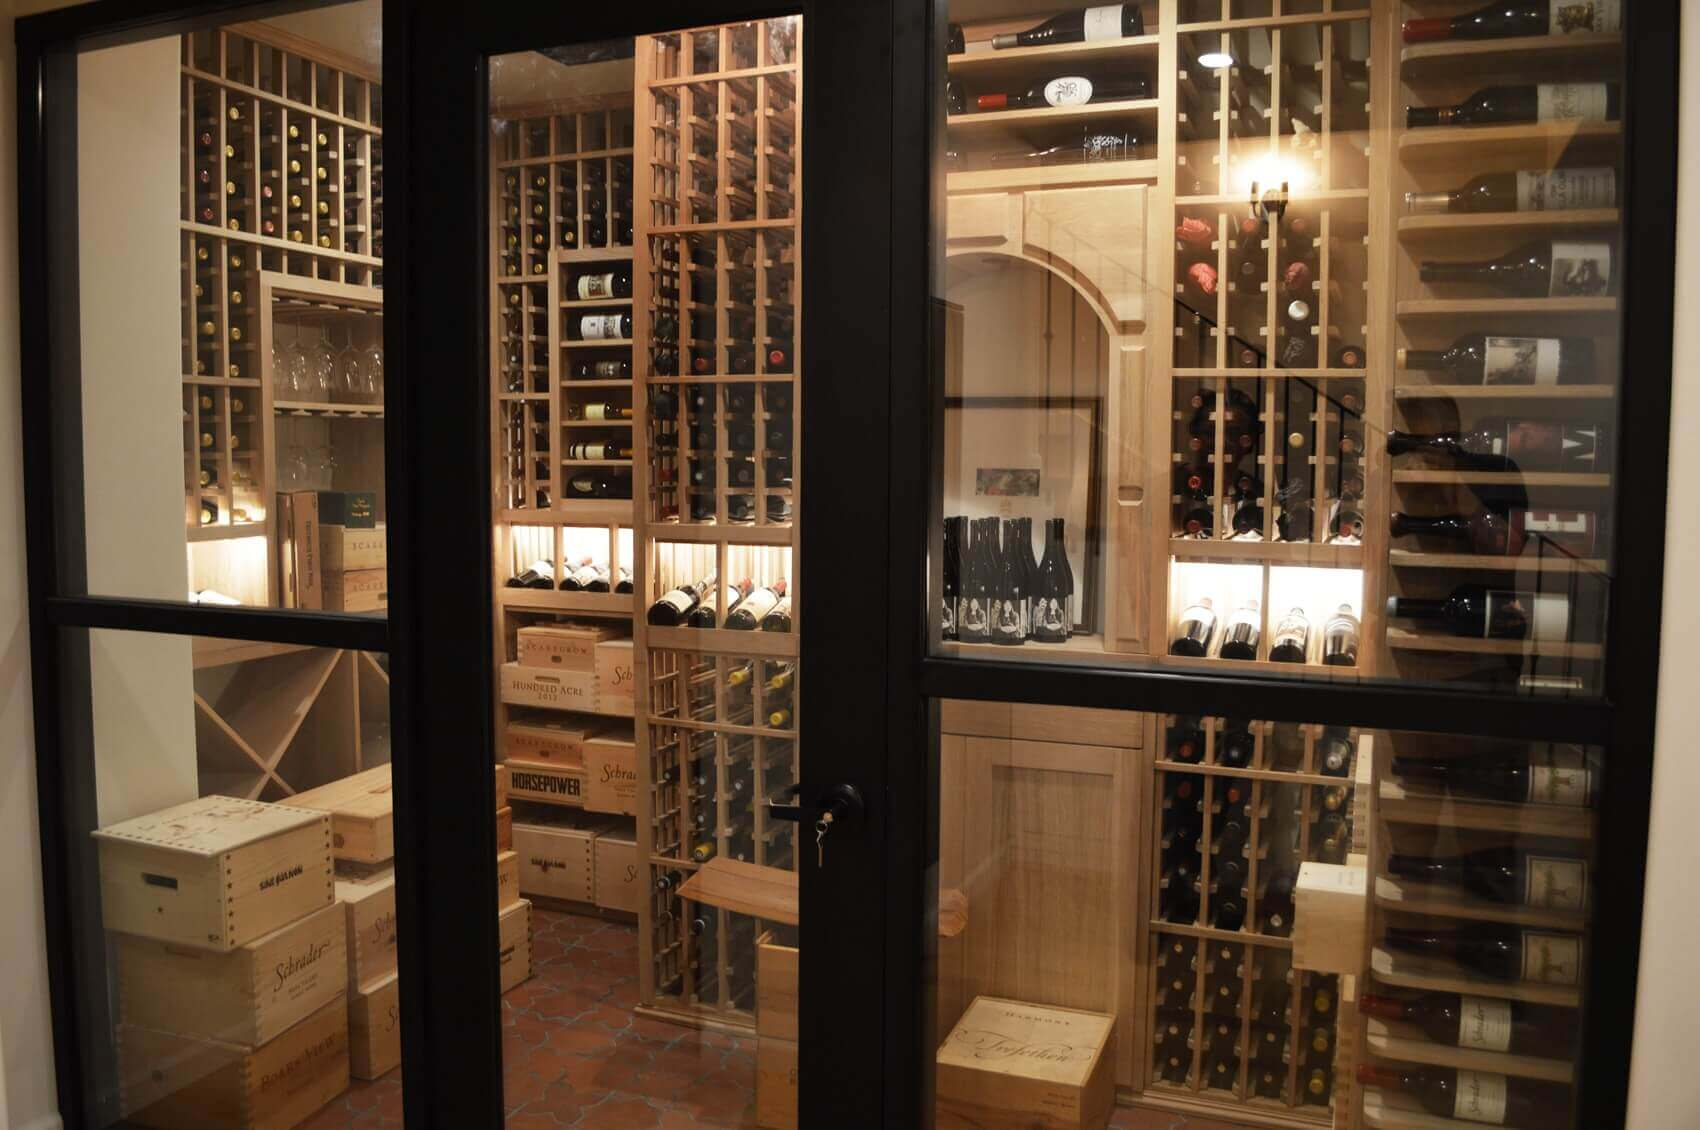 Framed glass doors gives a touch of modern design for this traditional wine cellar.